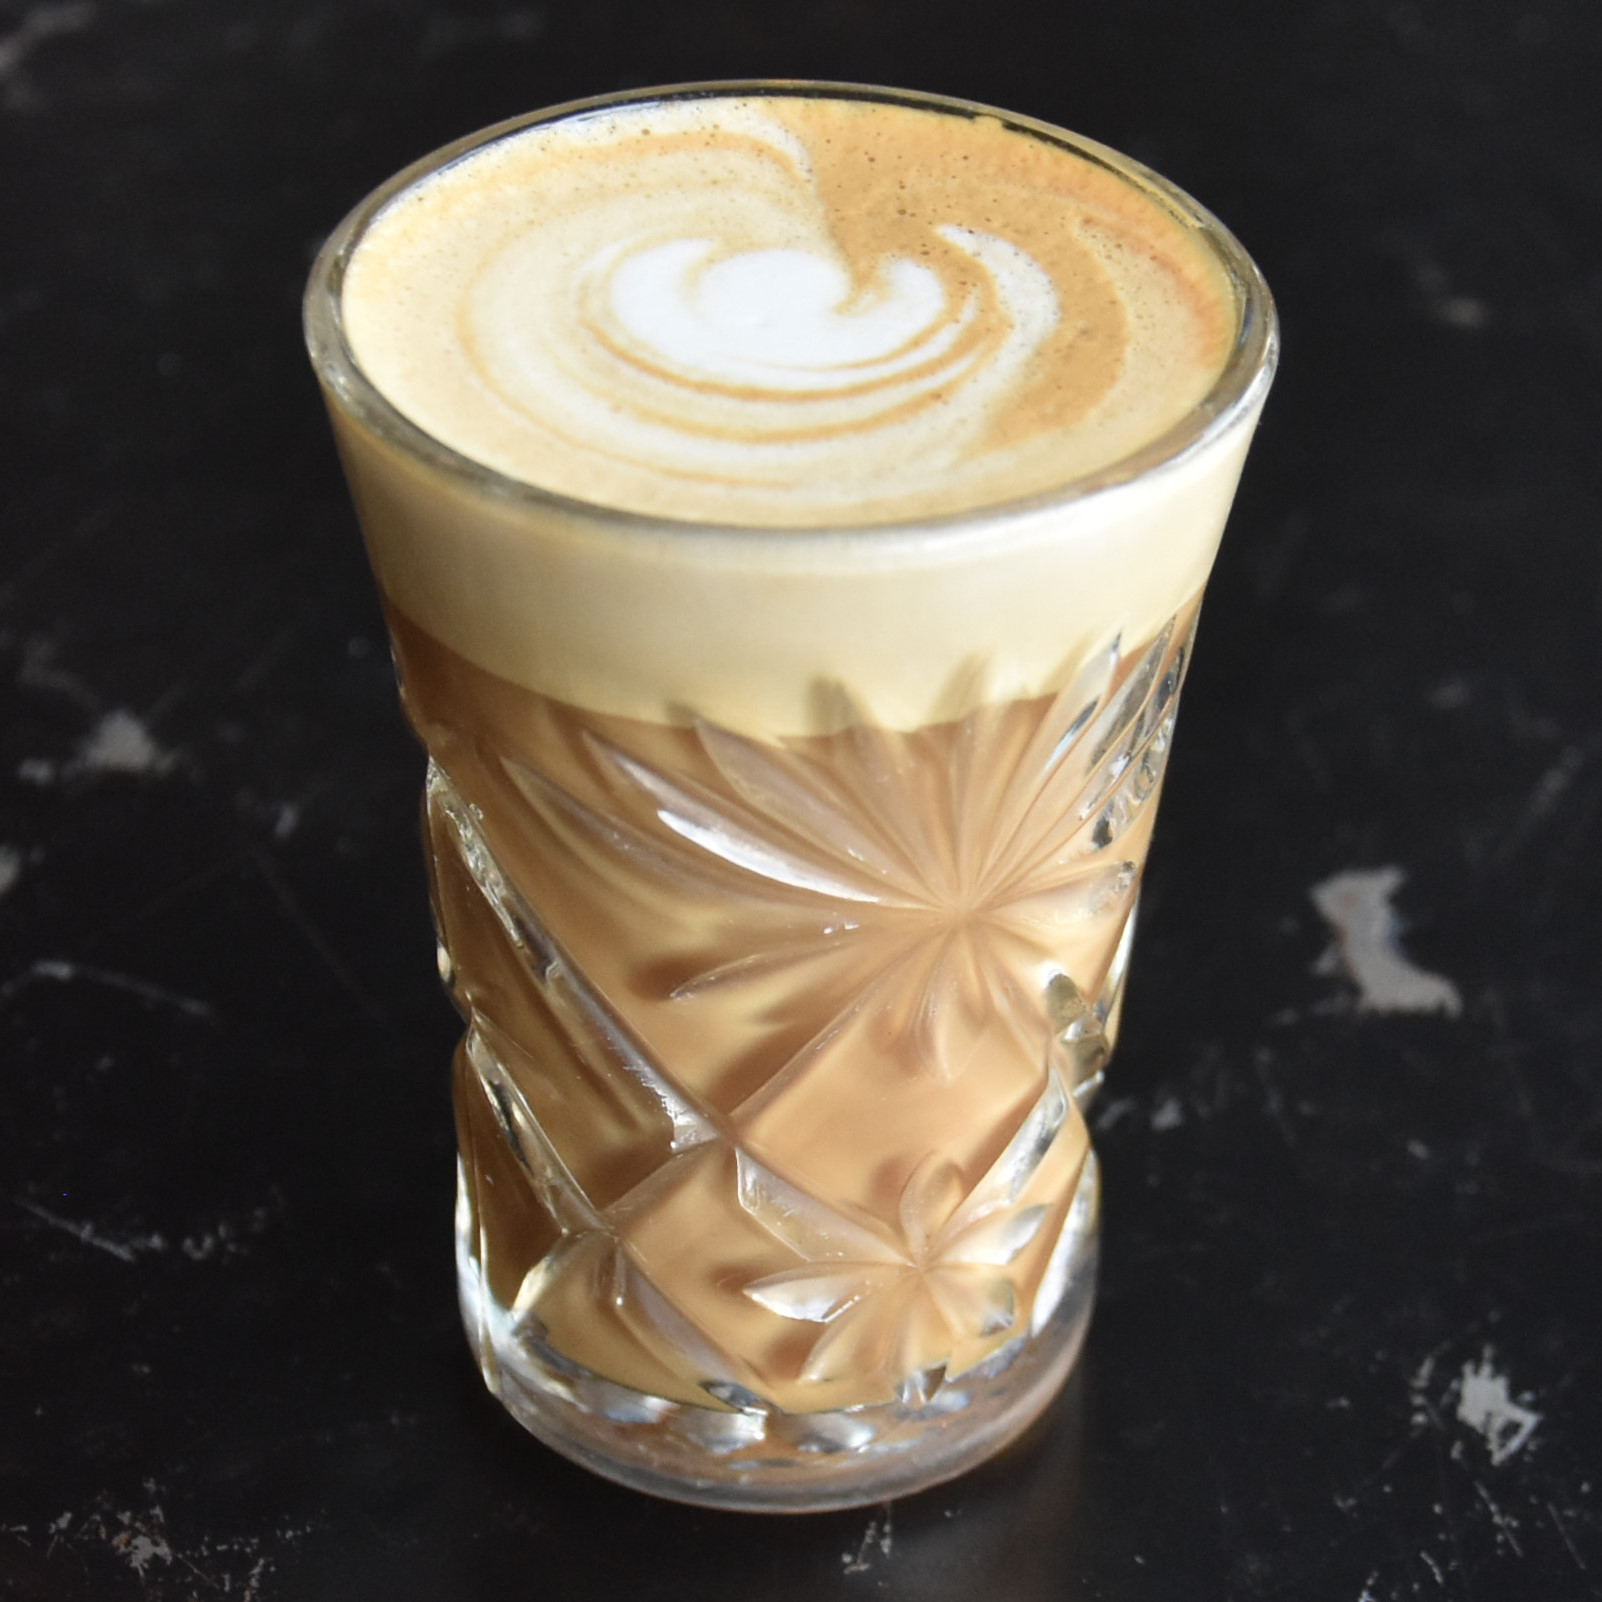 A cortado, made with a single-origin espresso, and served in a lovely glass at Cherry Coffee Roasters in New Orleans.